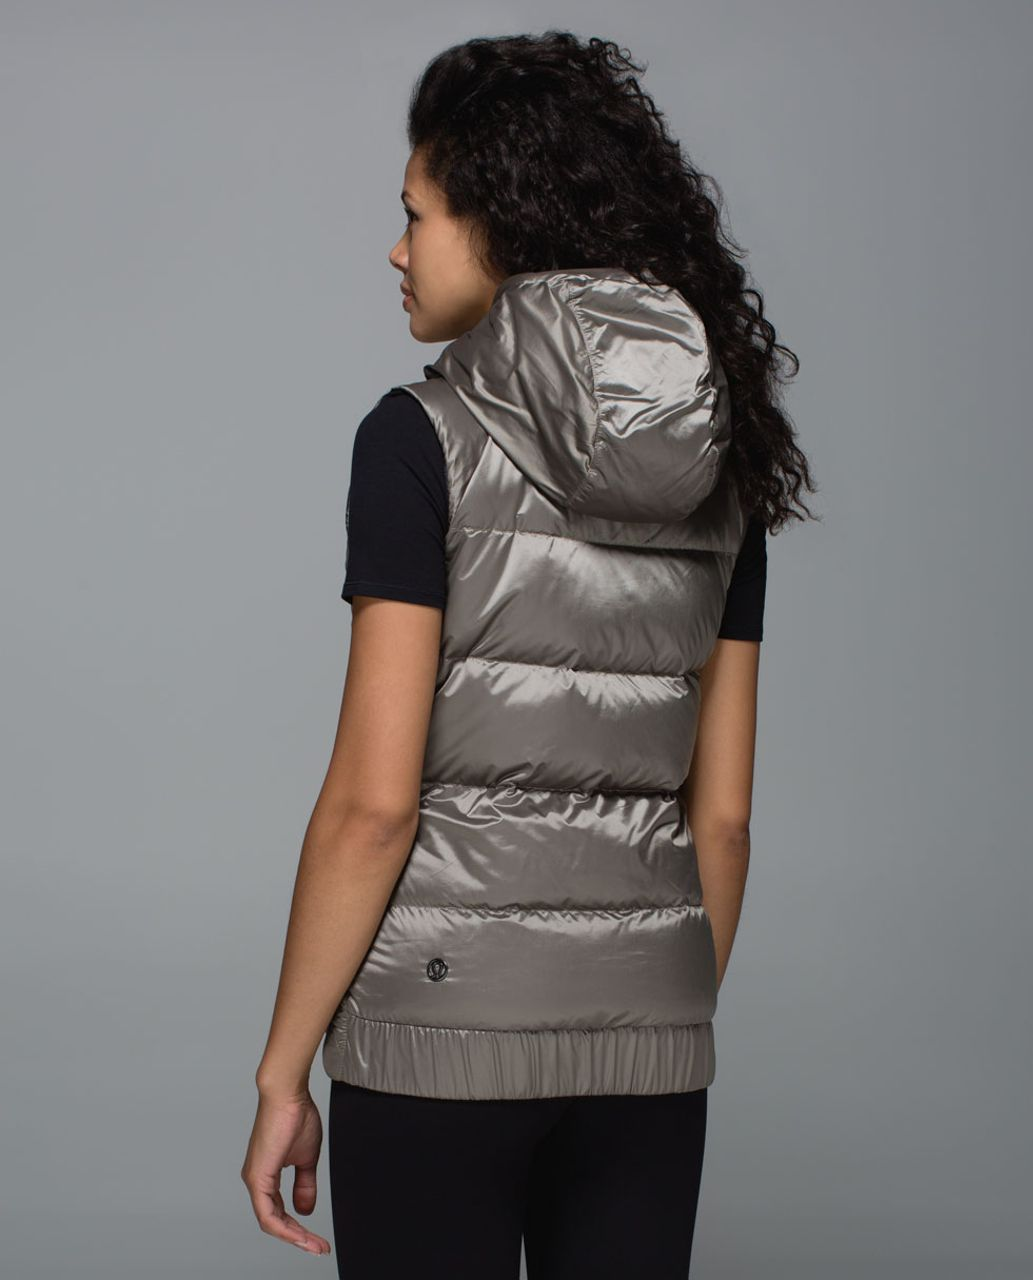 Lululemon The Fluffiest Vest - Cashew / Coast Camo Butter Pink Multi